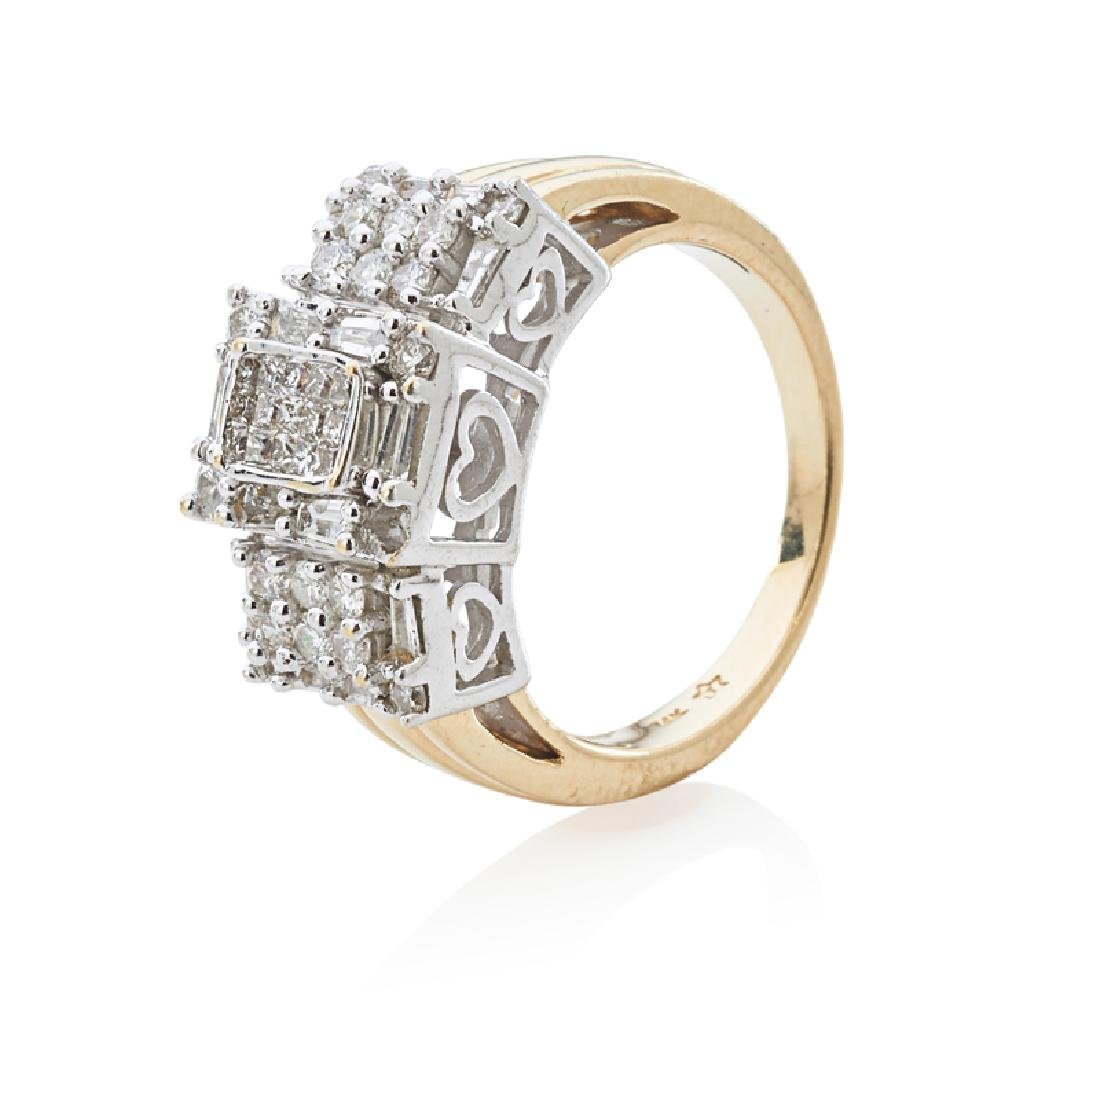 DIAMOND & YELLOW GOLD RING